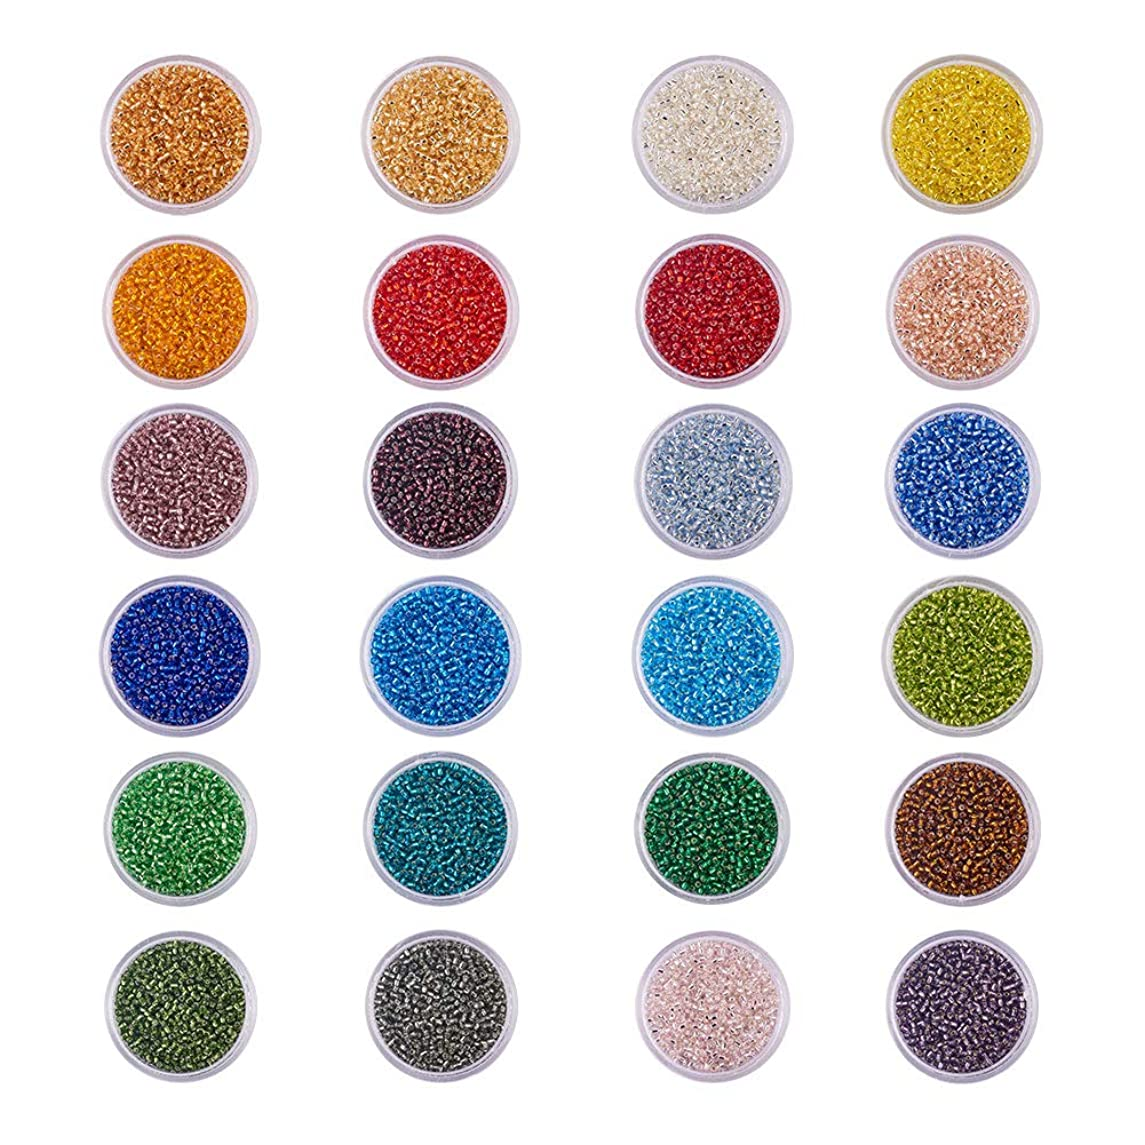 BENECREAT 36000pcs 12/0 MGB Japanese Glass Seed Beads Silver Lined Round Rocailles Seed Beads (24 Boxes 1500pcs/box Approx 36000pcs)